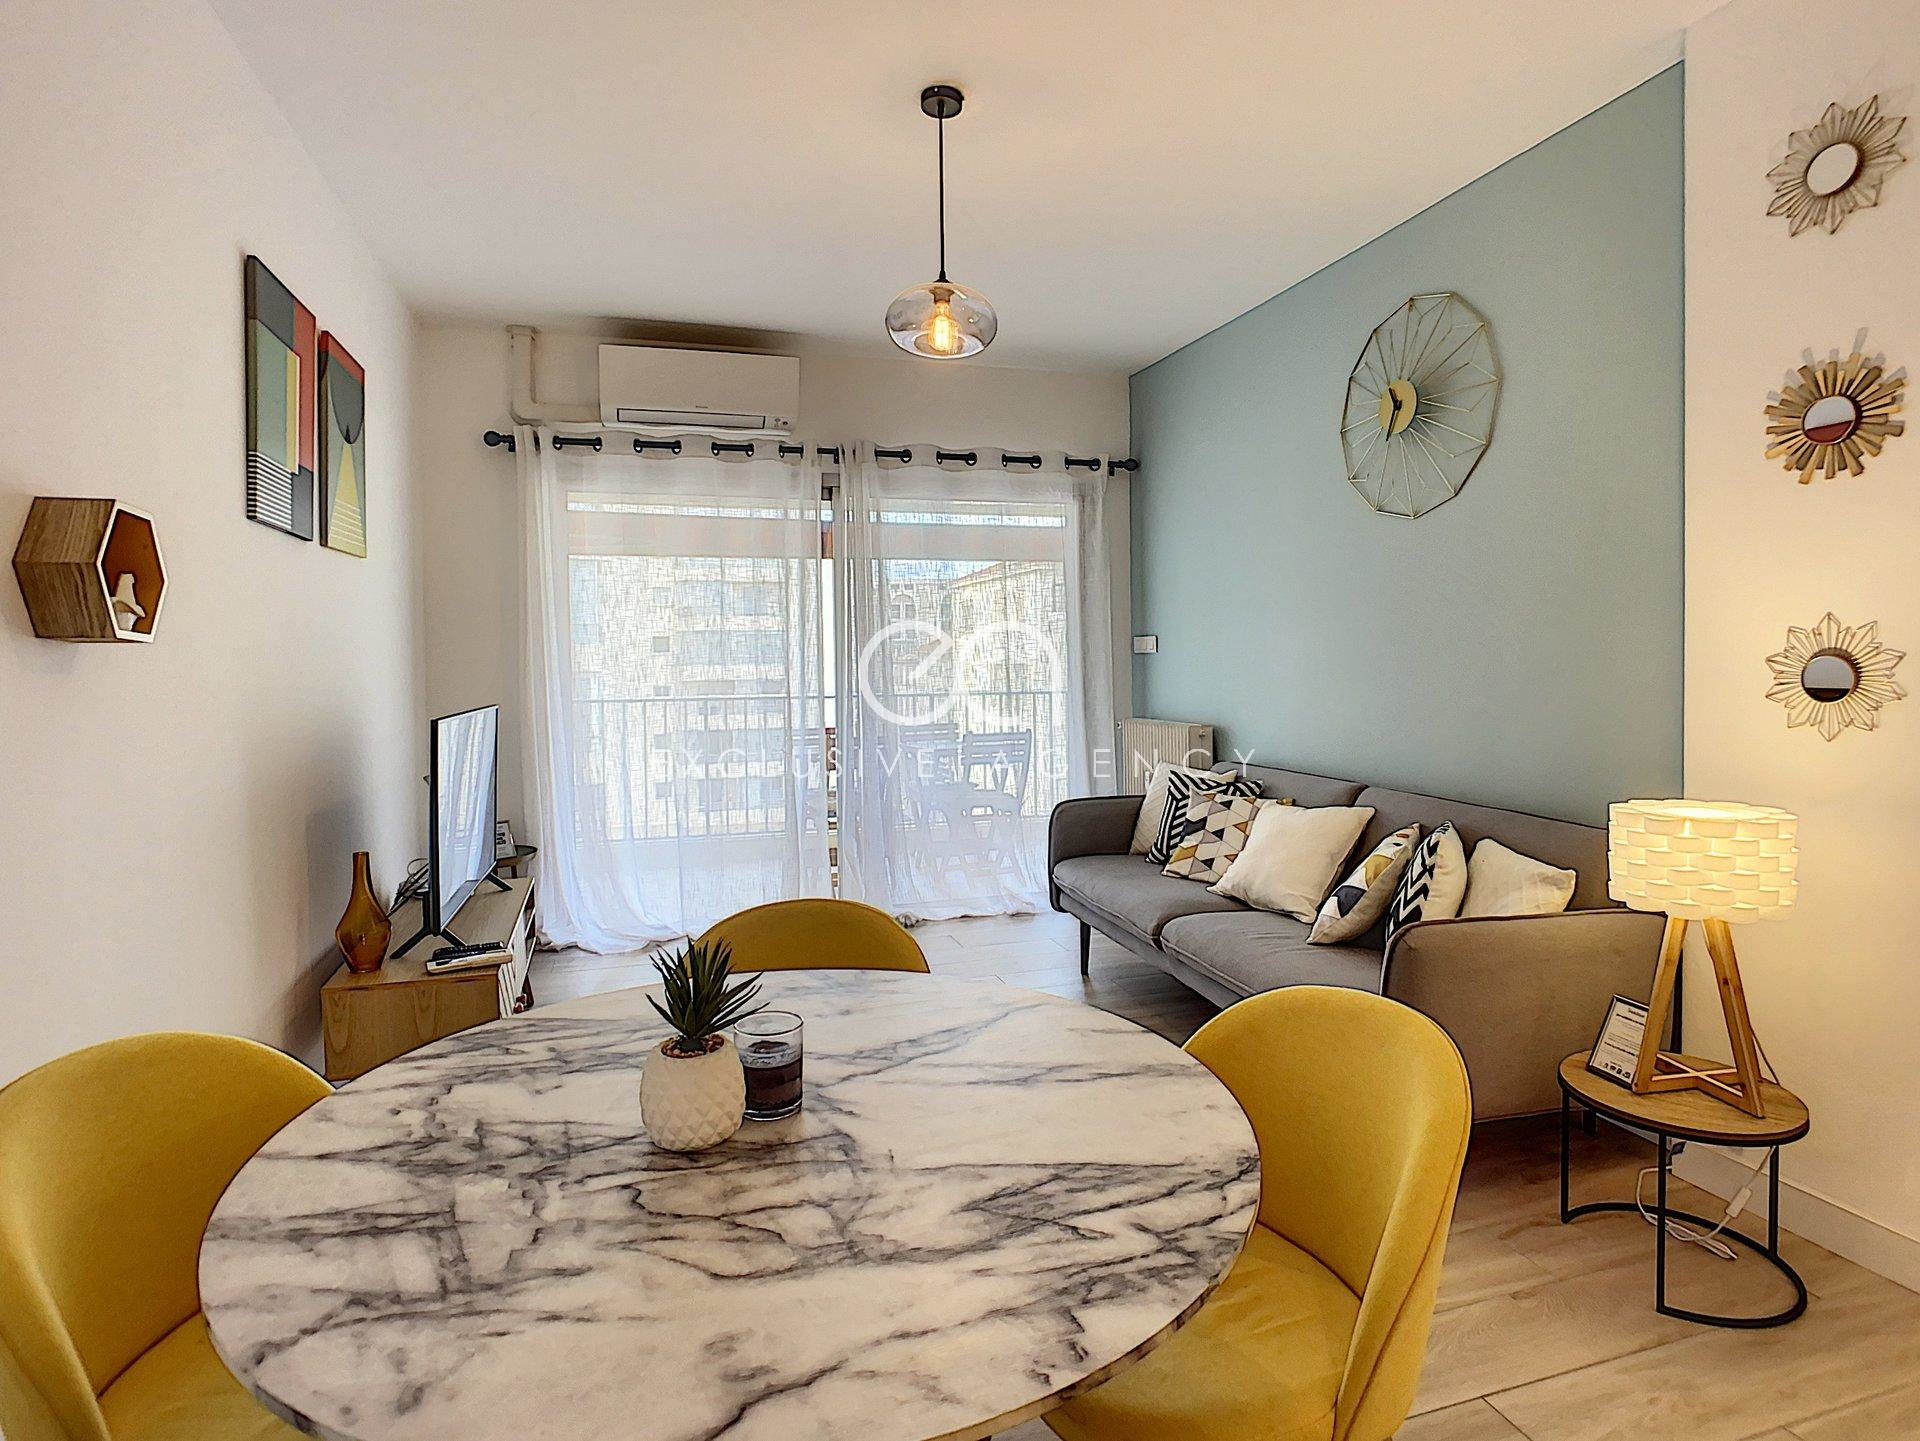 MONTHLY FURNISHED RENTAL CANNES 2-ROOM APARTMENT 40SQM WITH TERRACE